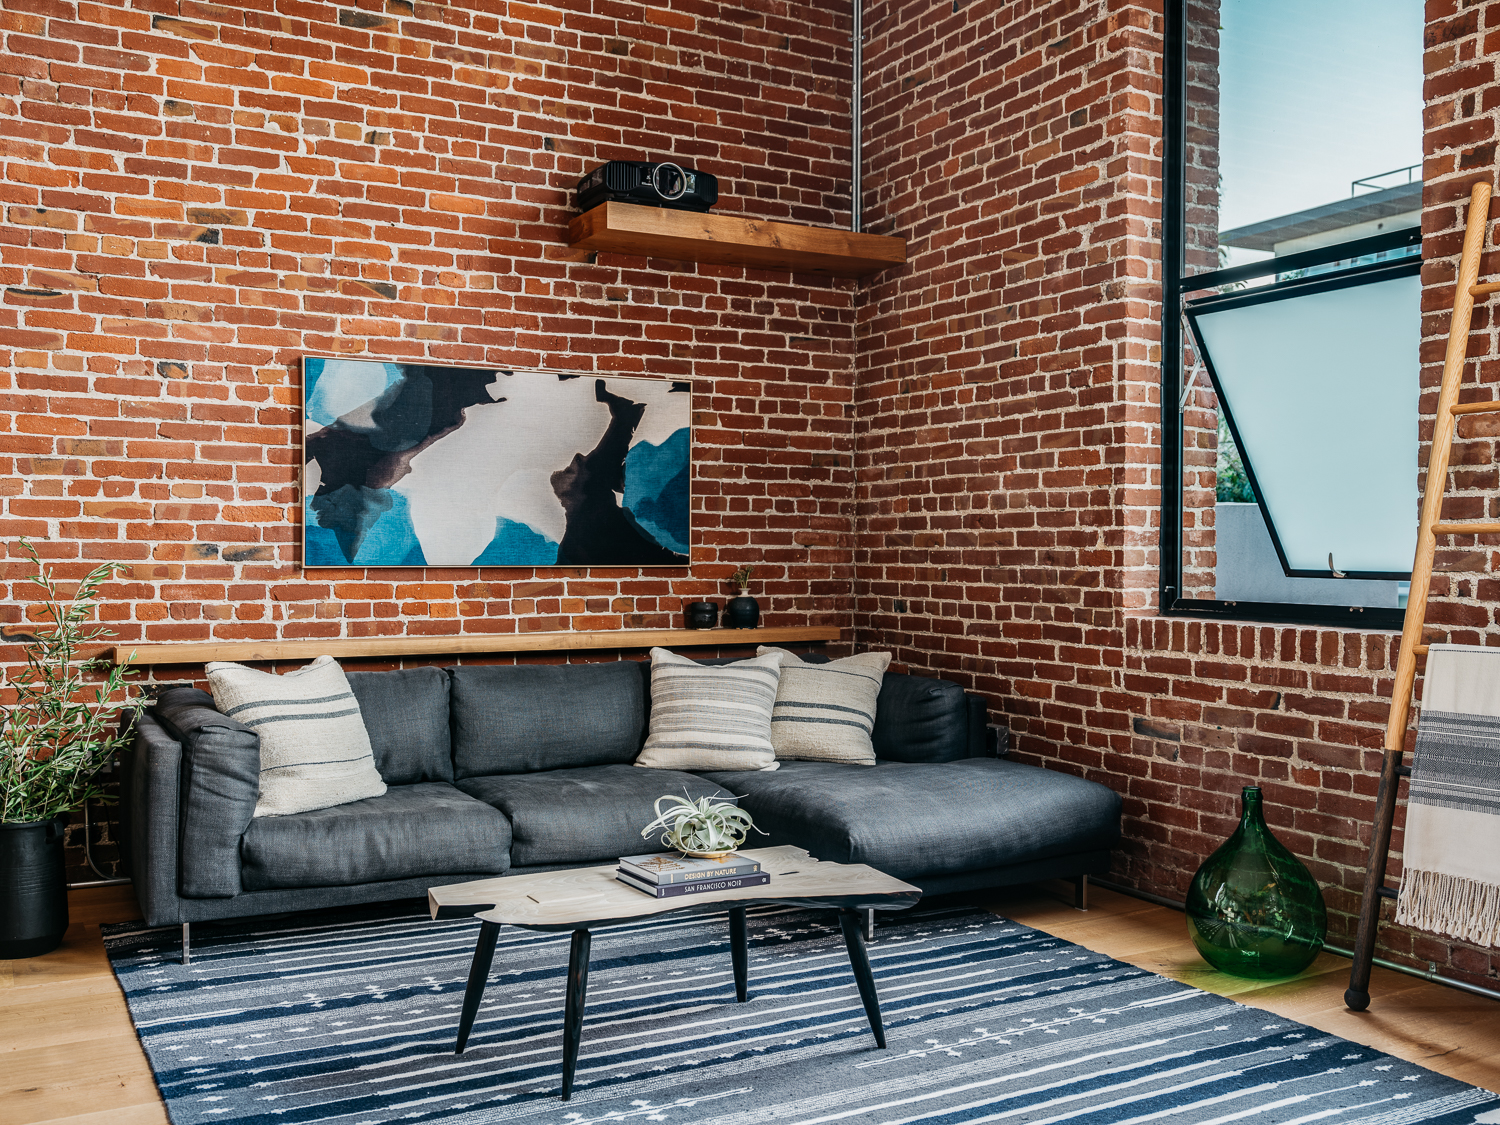 """Display Oversized Artwork   Oversized artwork can help balance the scale of an industrial space, while also adding personality and warmth to the interior. """"Art is a key component to adding that final touch of personalization to any space,"""" says Gretchen Murdock, founder and design director of MODTAGE Design. """"It makes the space unique to the client and helps to create focal points to lead the eye. I always find that in looking at someone's art, you are able to learn a little more about that person.""""  """"Smaller pieces of art can get lost on those large lofty walls,"""" adds Lagrange, who also uses framed pieces of wallpaper or textiles in place of large artwork."""